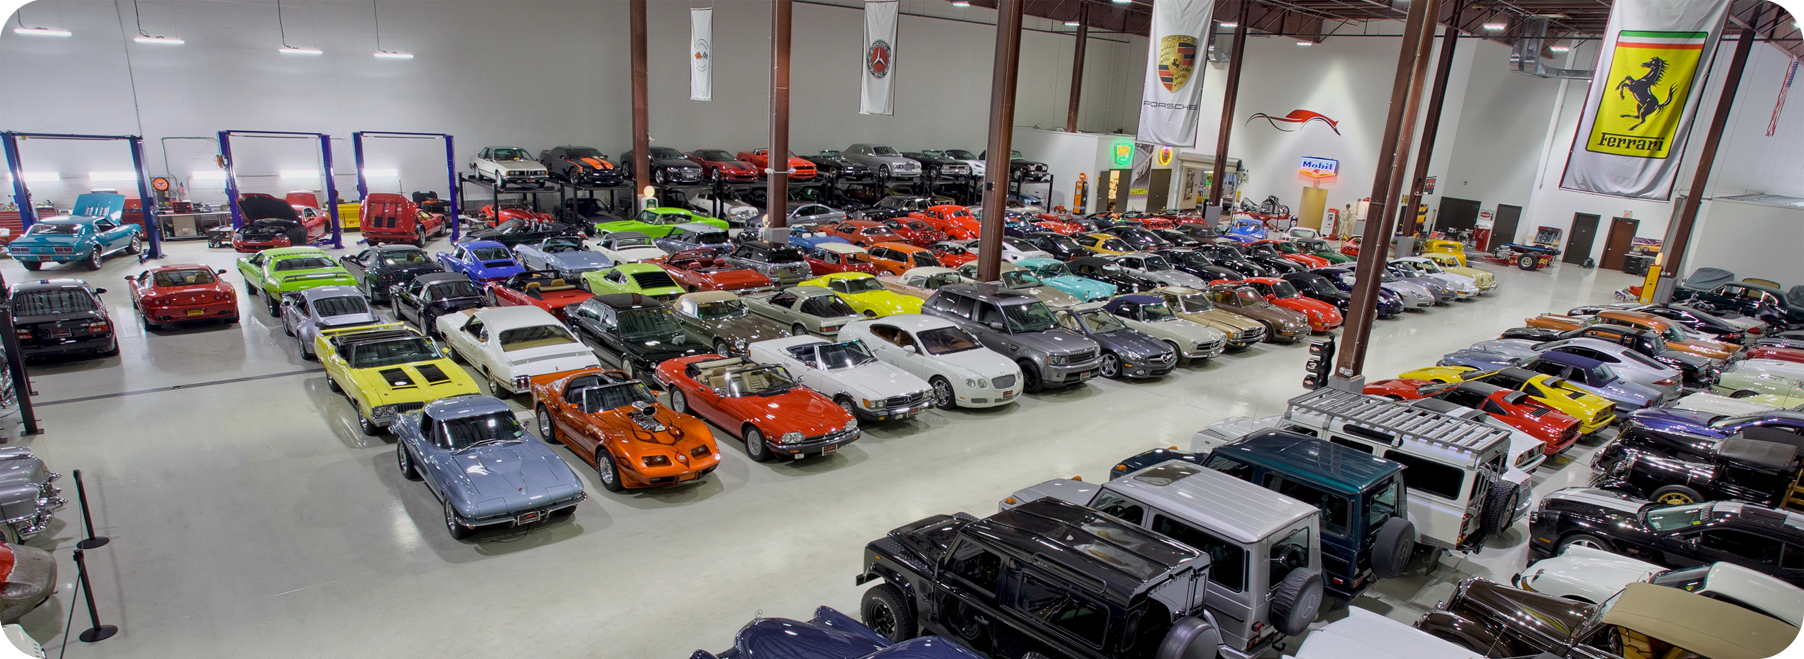 Exotic And Collectible Car Sales Storage Consignment